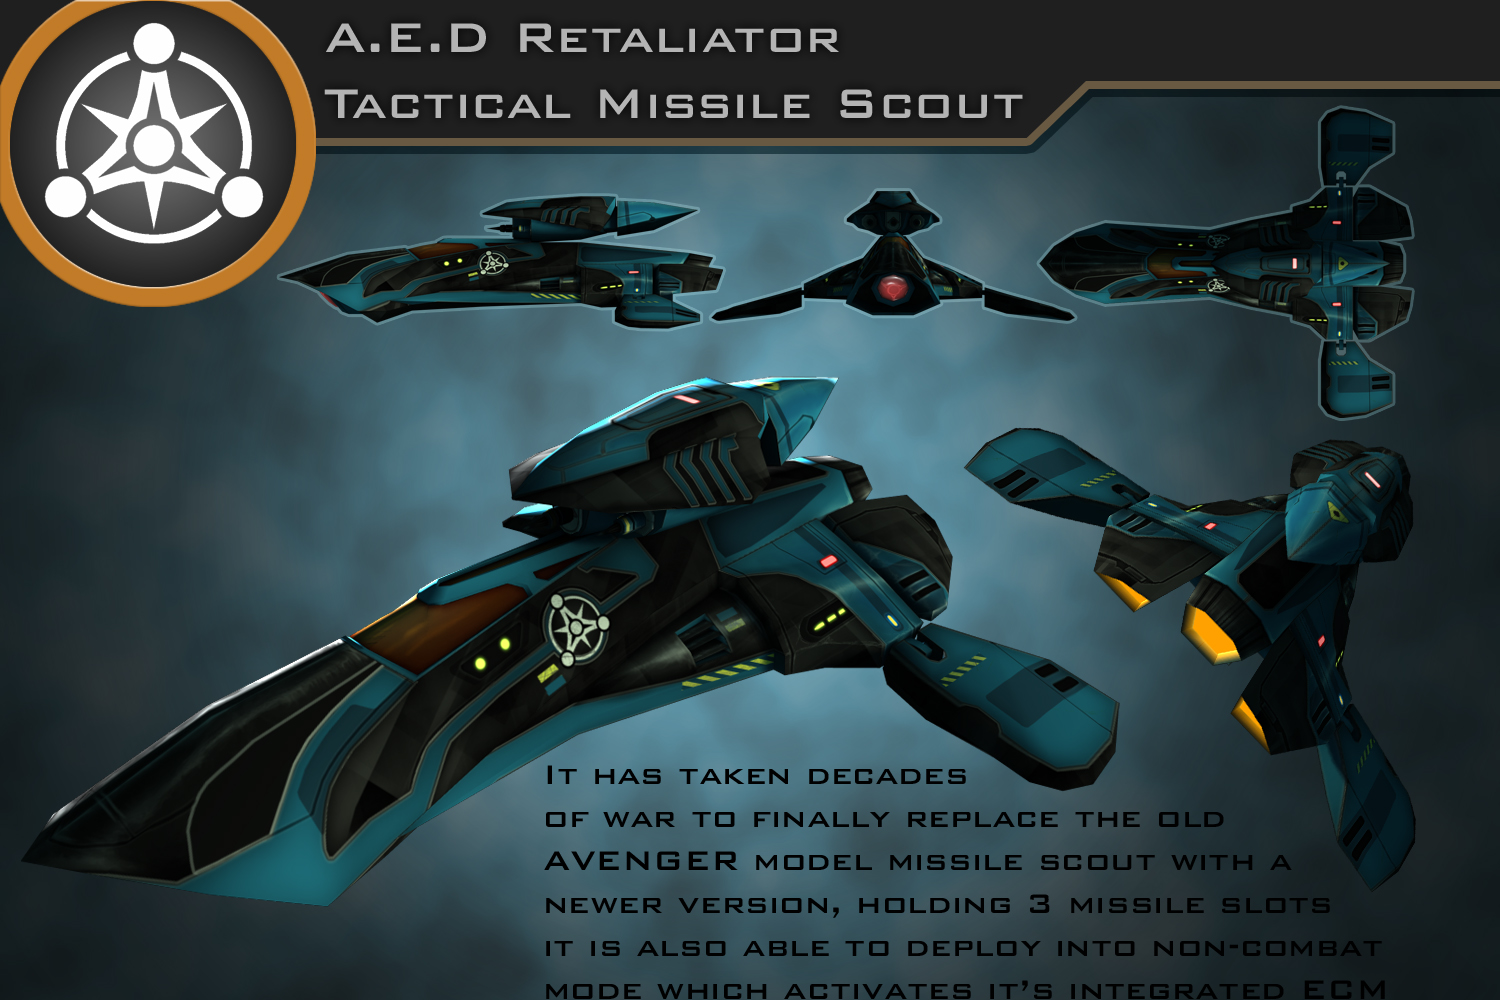 Tactical missile scout image bz2 community project 2 mod for Battlezone 2